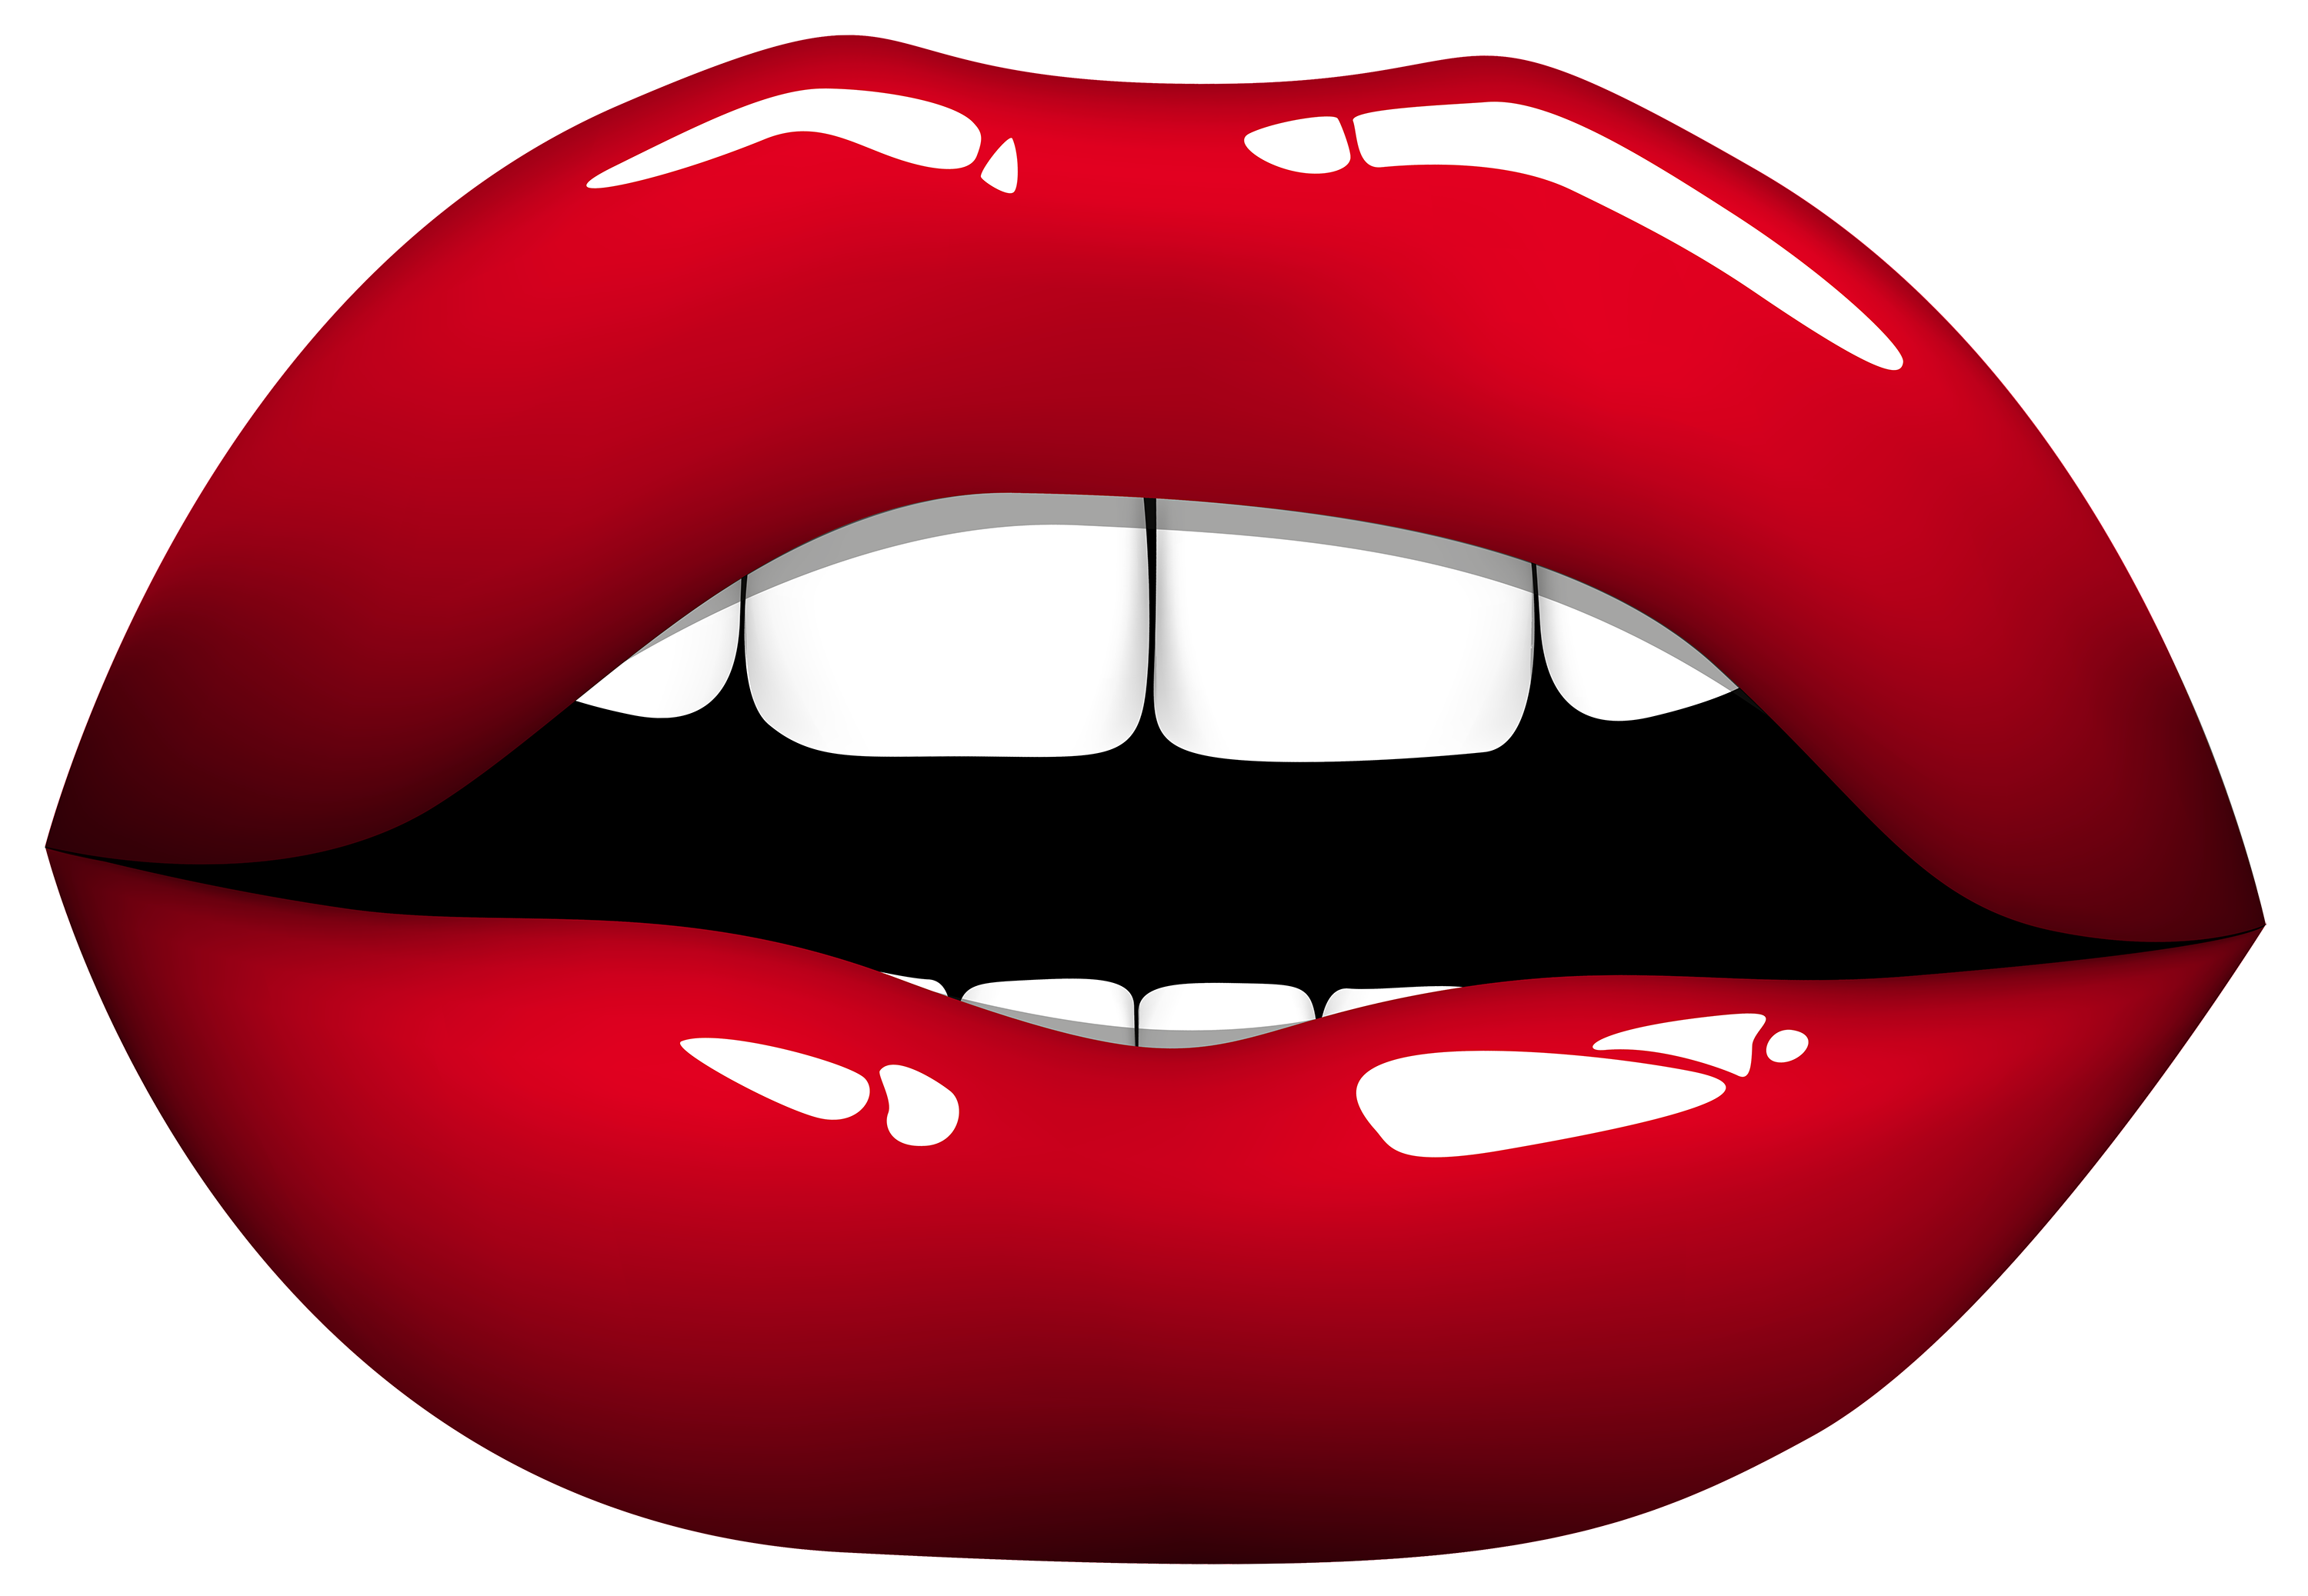 mouth clipart transparent background